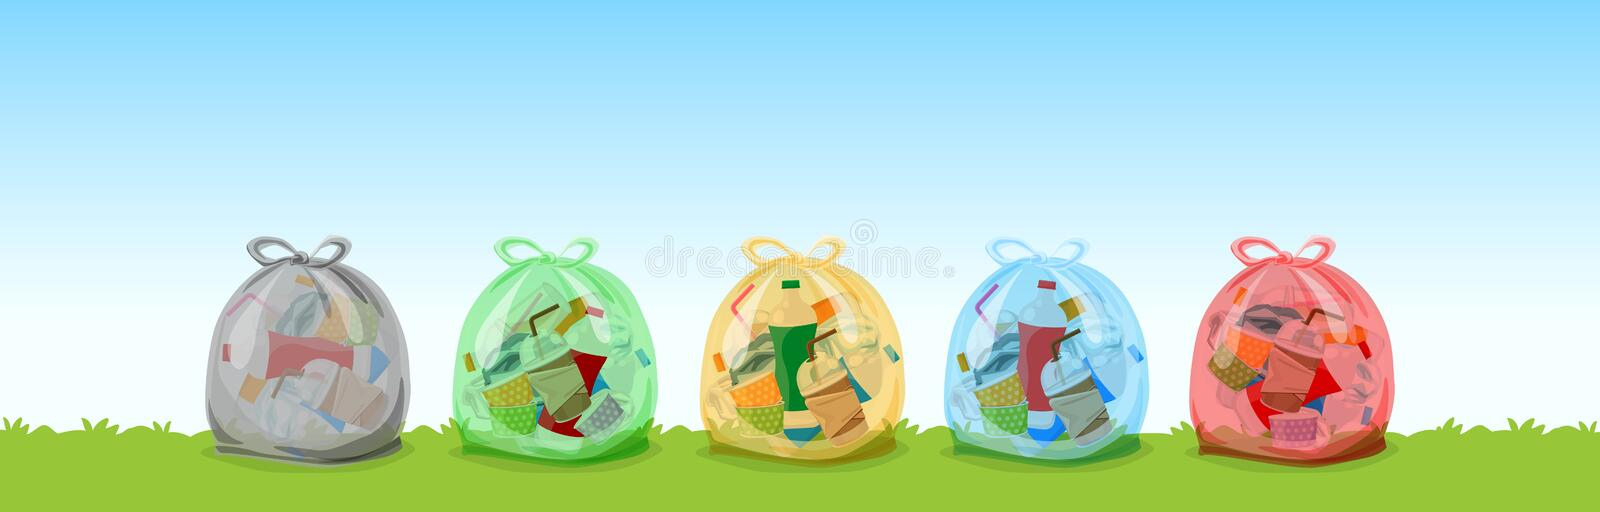 Clear plastic garbage bags black, green, yellow, blue and red on the grass and sky background, set of colored garbage waste bags stock illustration